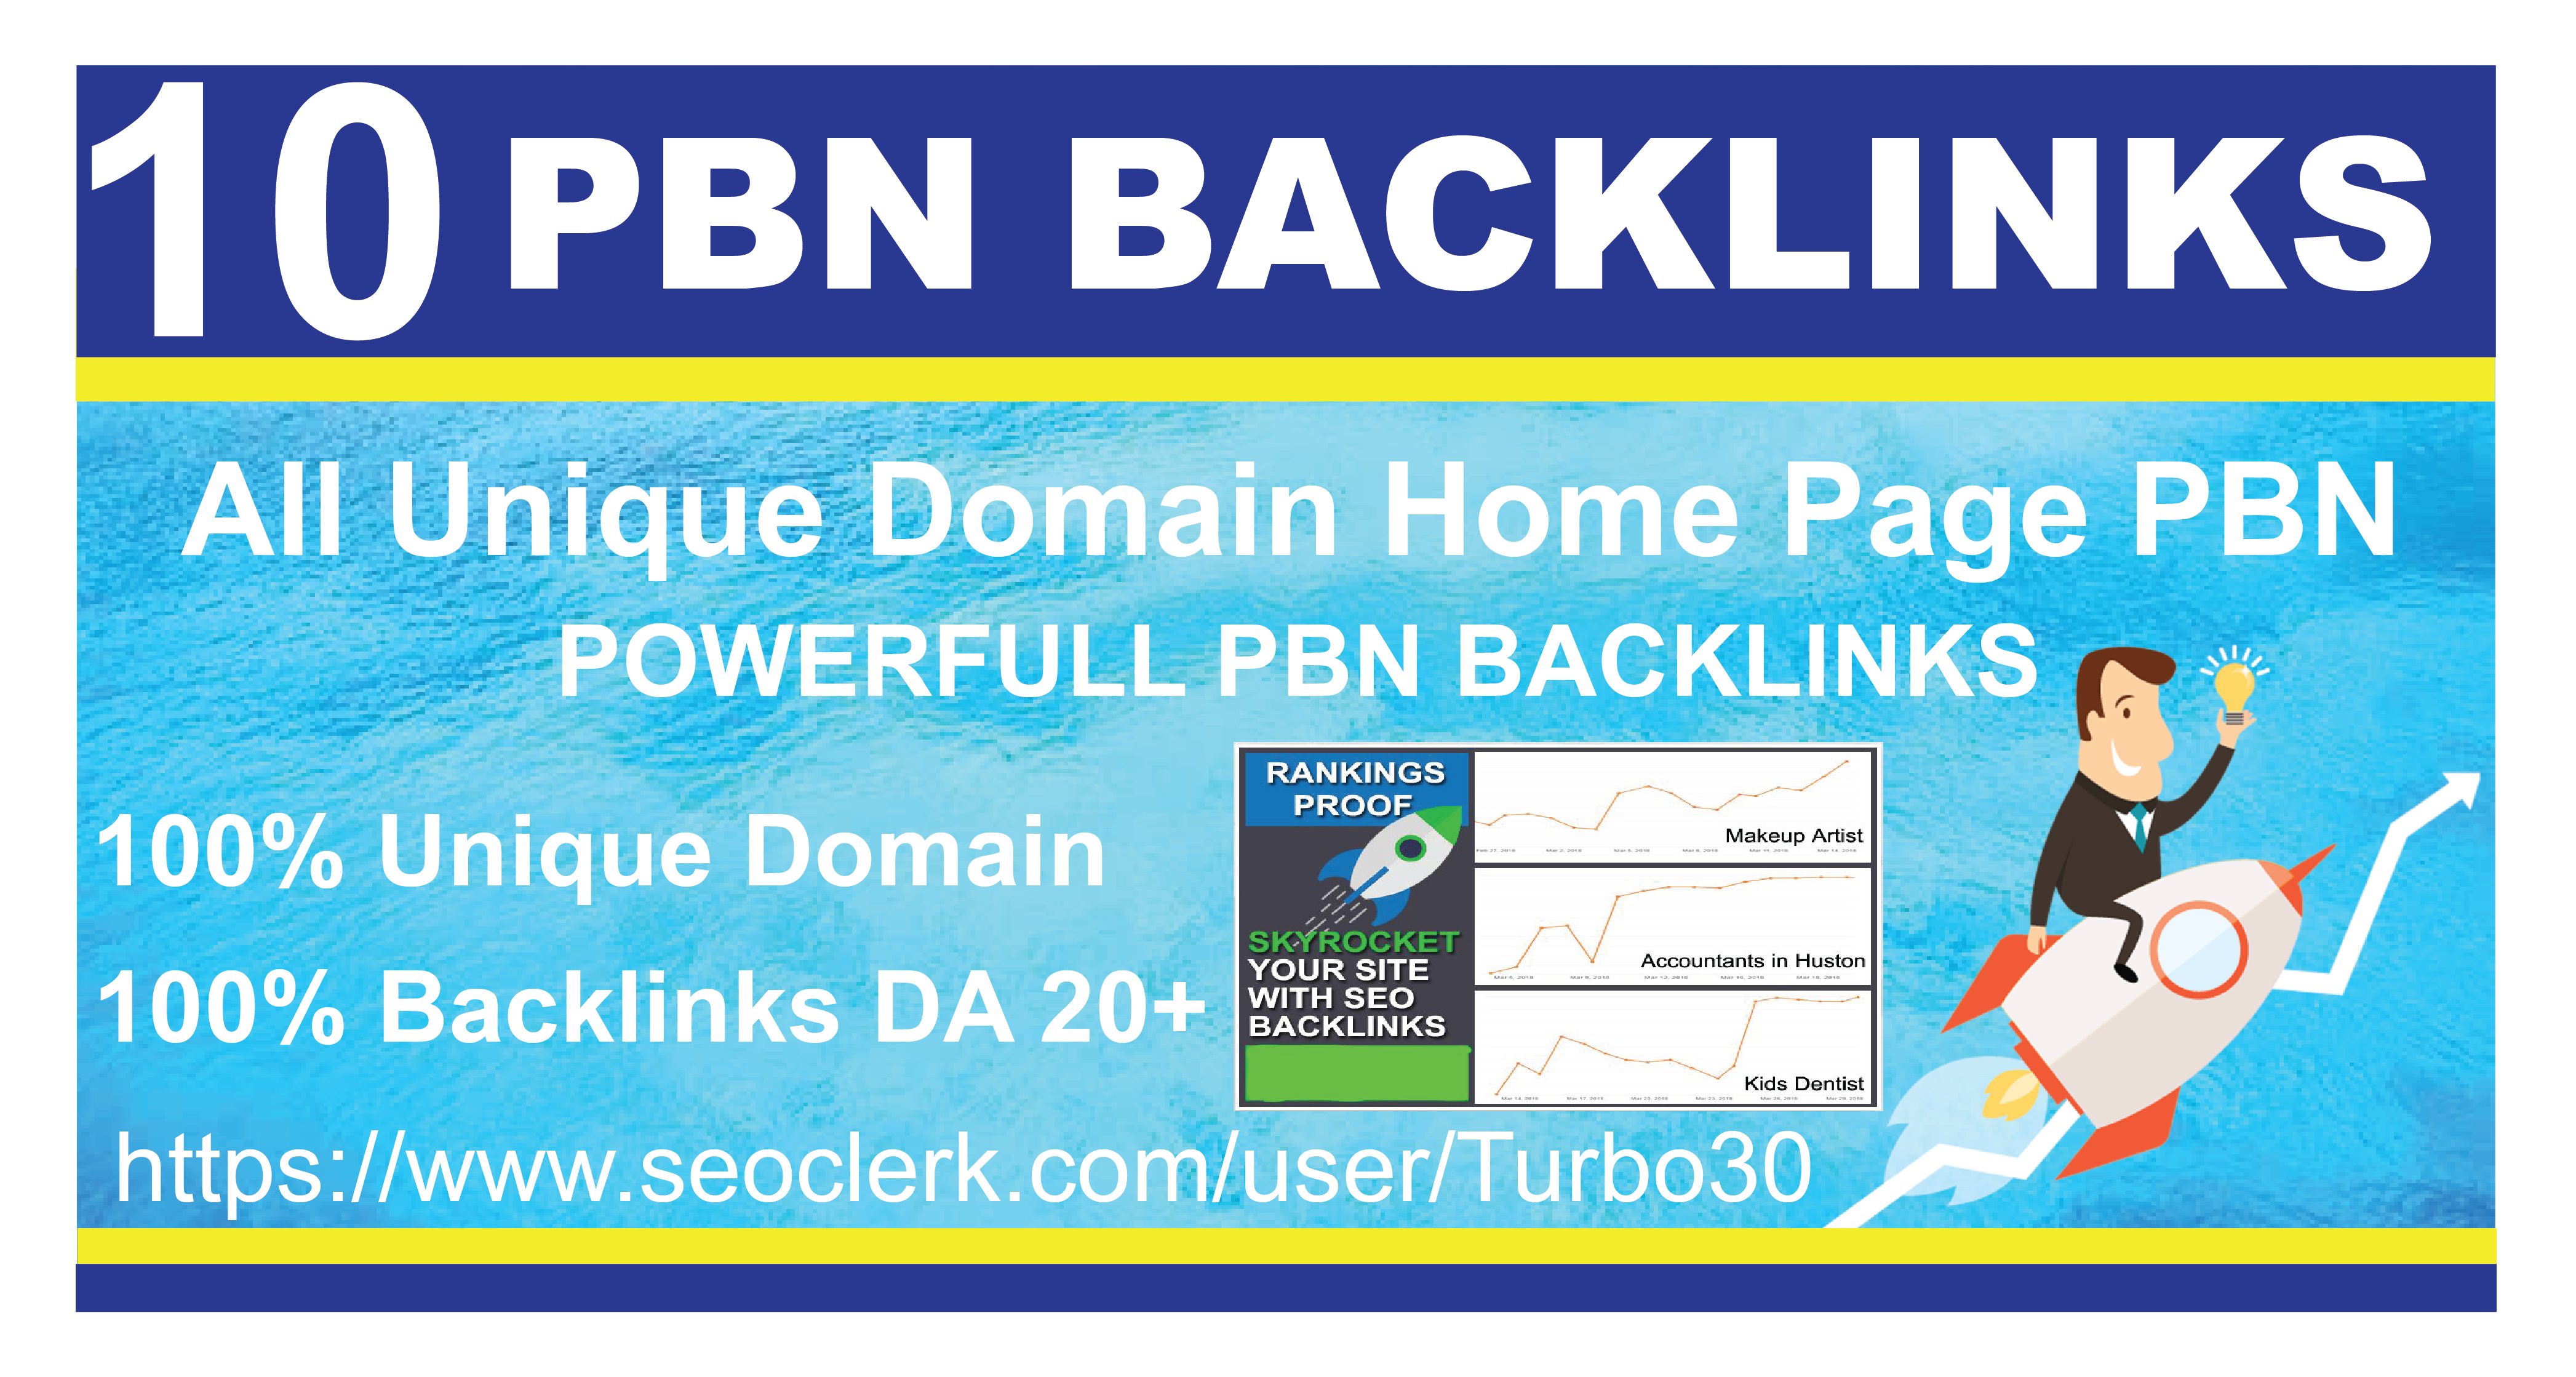 I will do 10 home page PBN Backlinks DA 20+